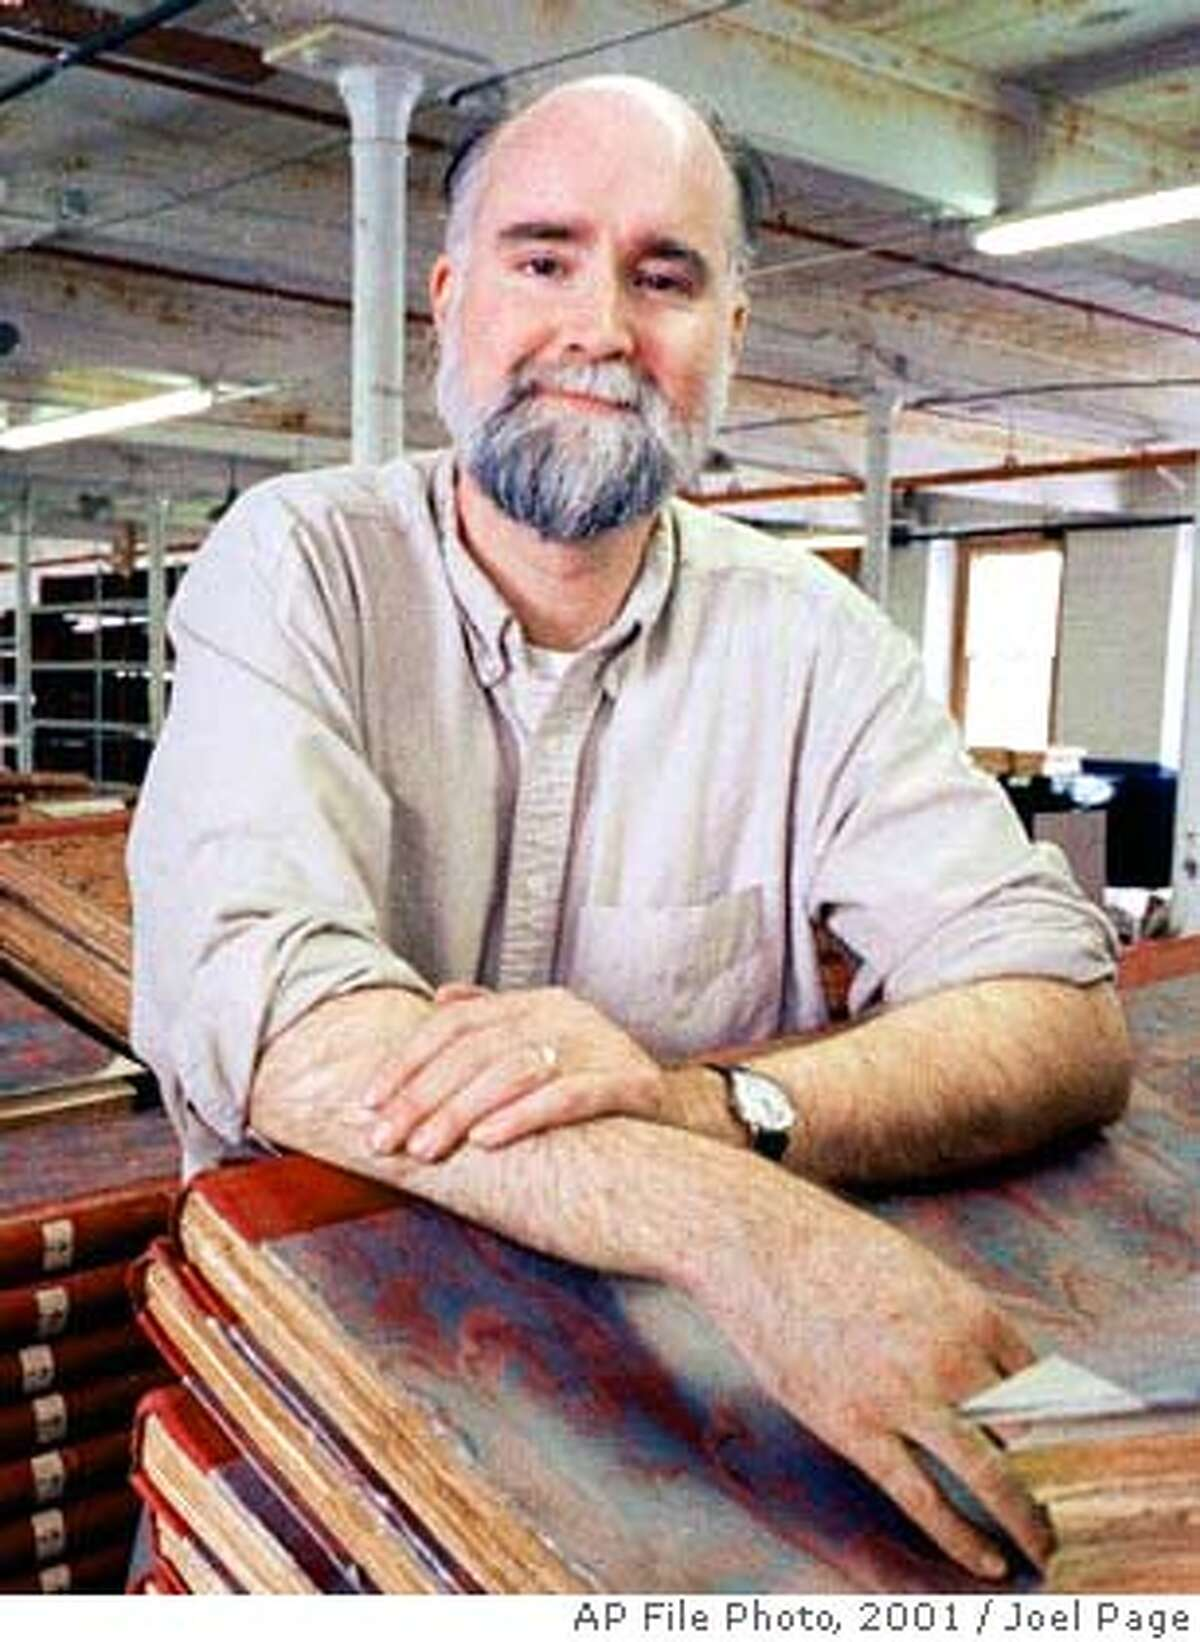 """**FILE**Author Nicholson Baker poses among bound volumes of old newspapers at an old mill building in Rollingsford, N.H., March 3, 2001. Baker organized the nonprofit American Newspaper Repository and become caretaker for the collection. His latest book is """"Checkpoint."""" (AP Photo/Joel Page)"""